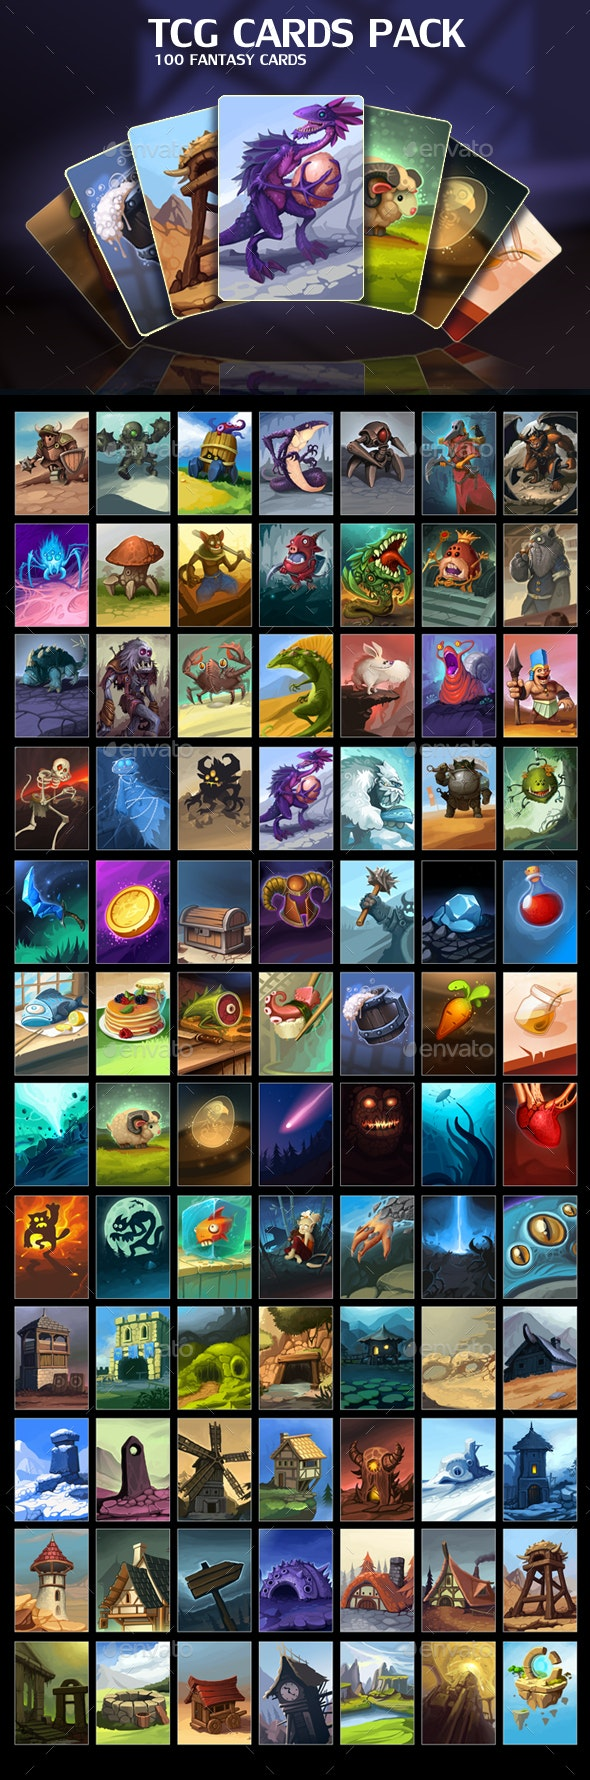 TCG Cards Pack - Miscellaneous Game Assets